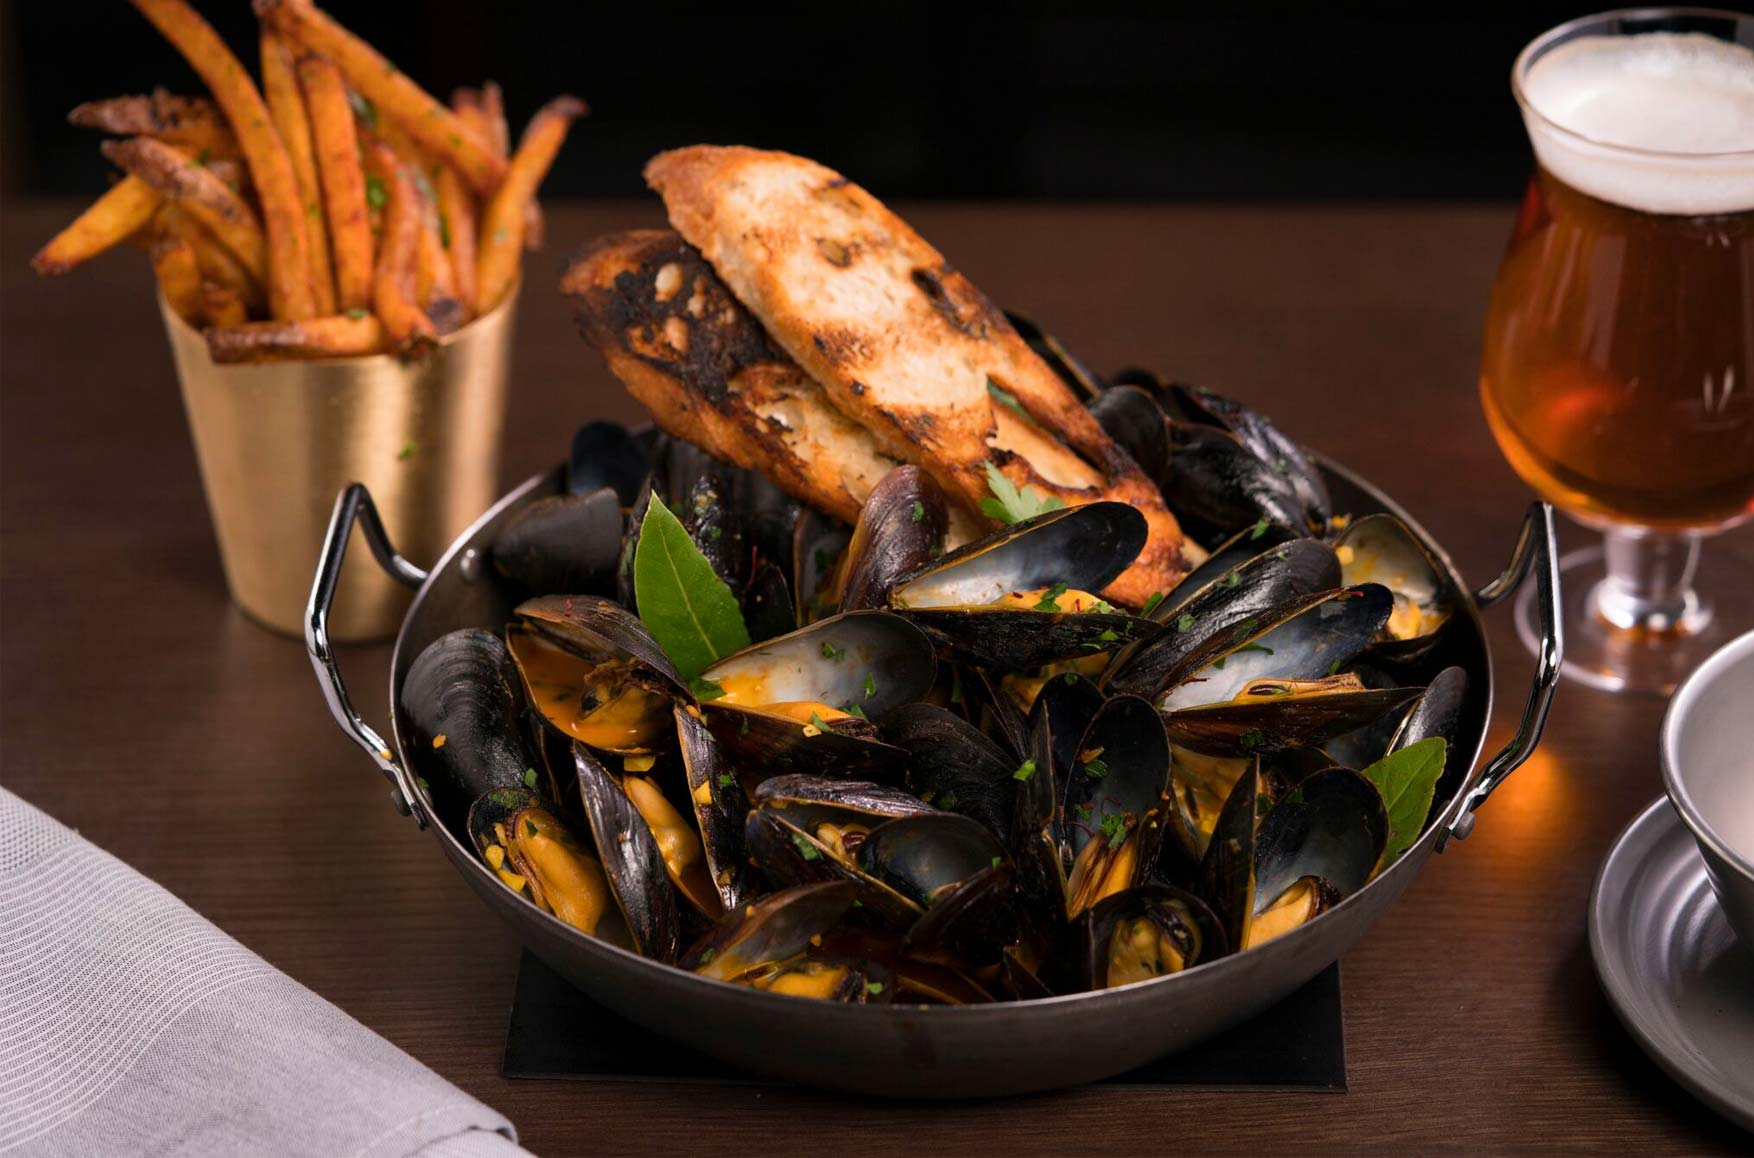 Mussels in silver bowl, French Fries, Beer